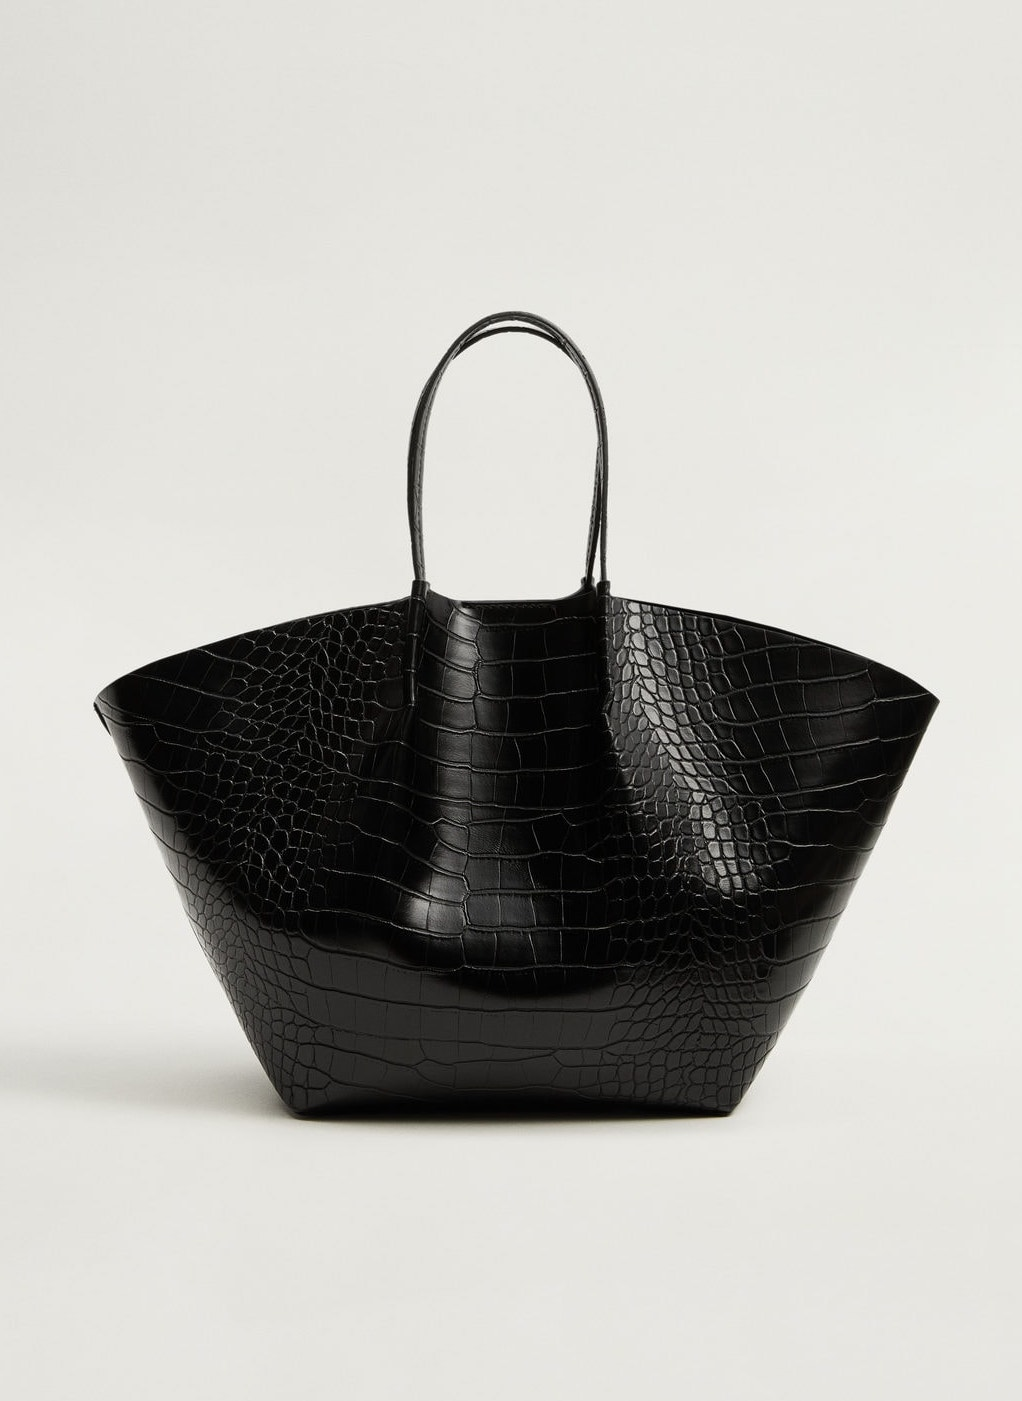 We're Crushing on This $60 Croc-Effect Tote Bag